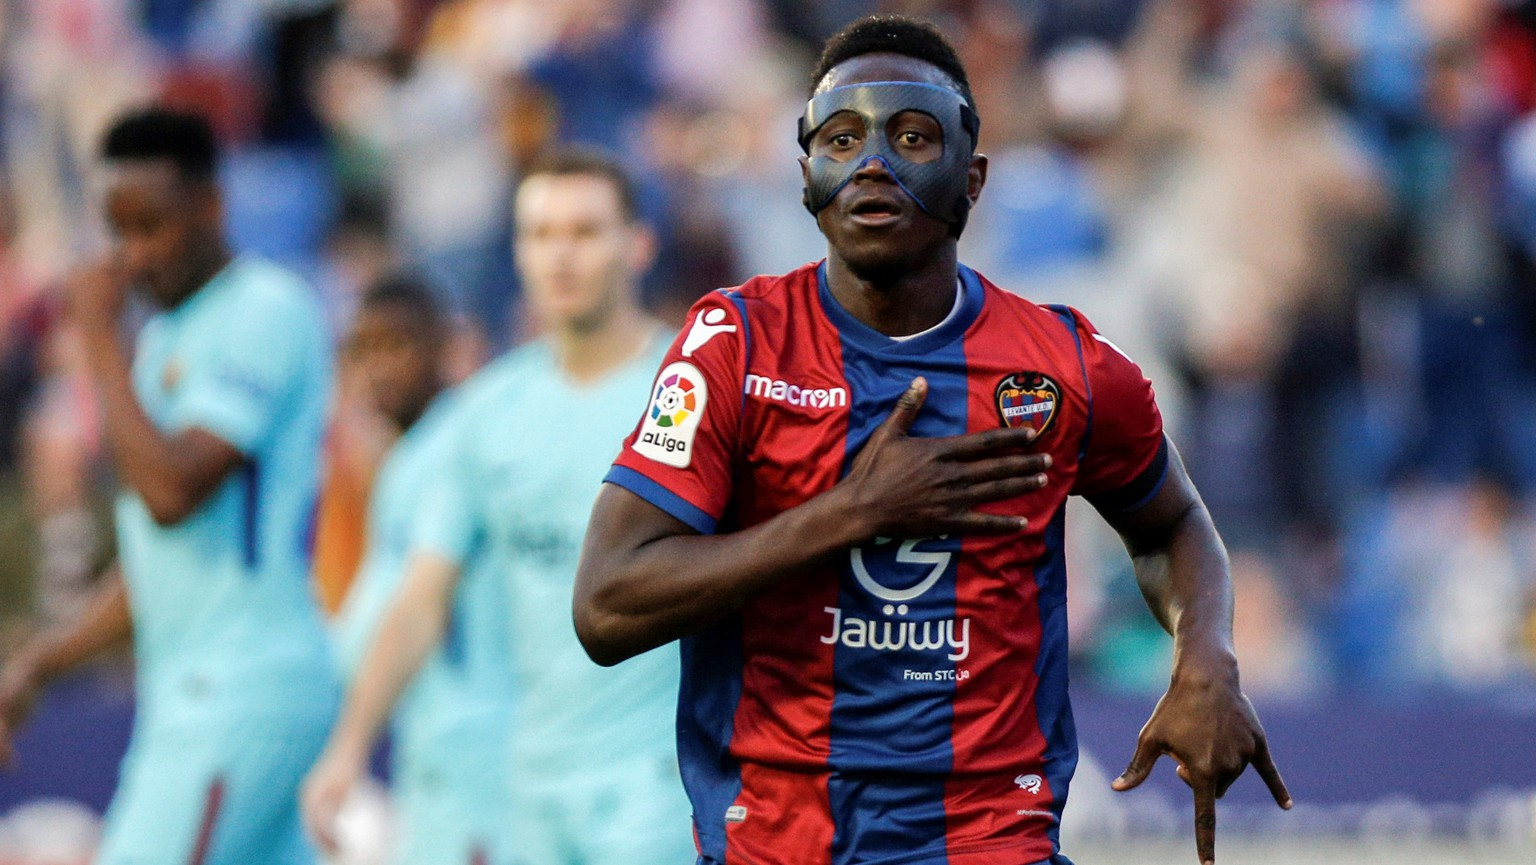 epa06733895 Levante's Ghanaian striker Emmanuel Boateng celebrates after scoring against FC Barcelona during their Spanish Primera Division soccer match at Ciudad de Valencia stadium in Valencia, eastern Spain, 13 May 2018.  EPA/BIEL ALINO